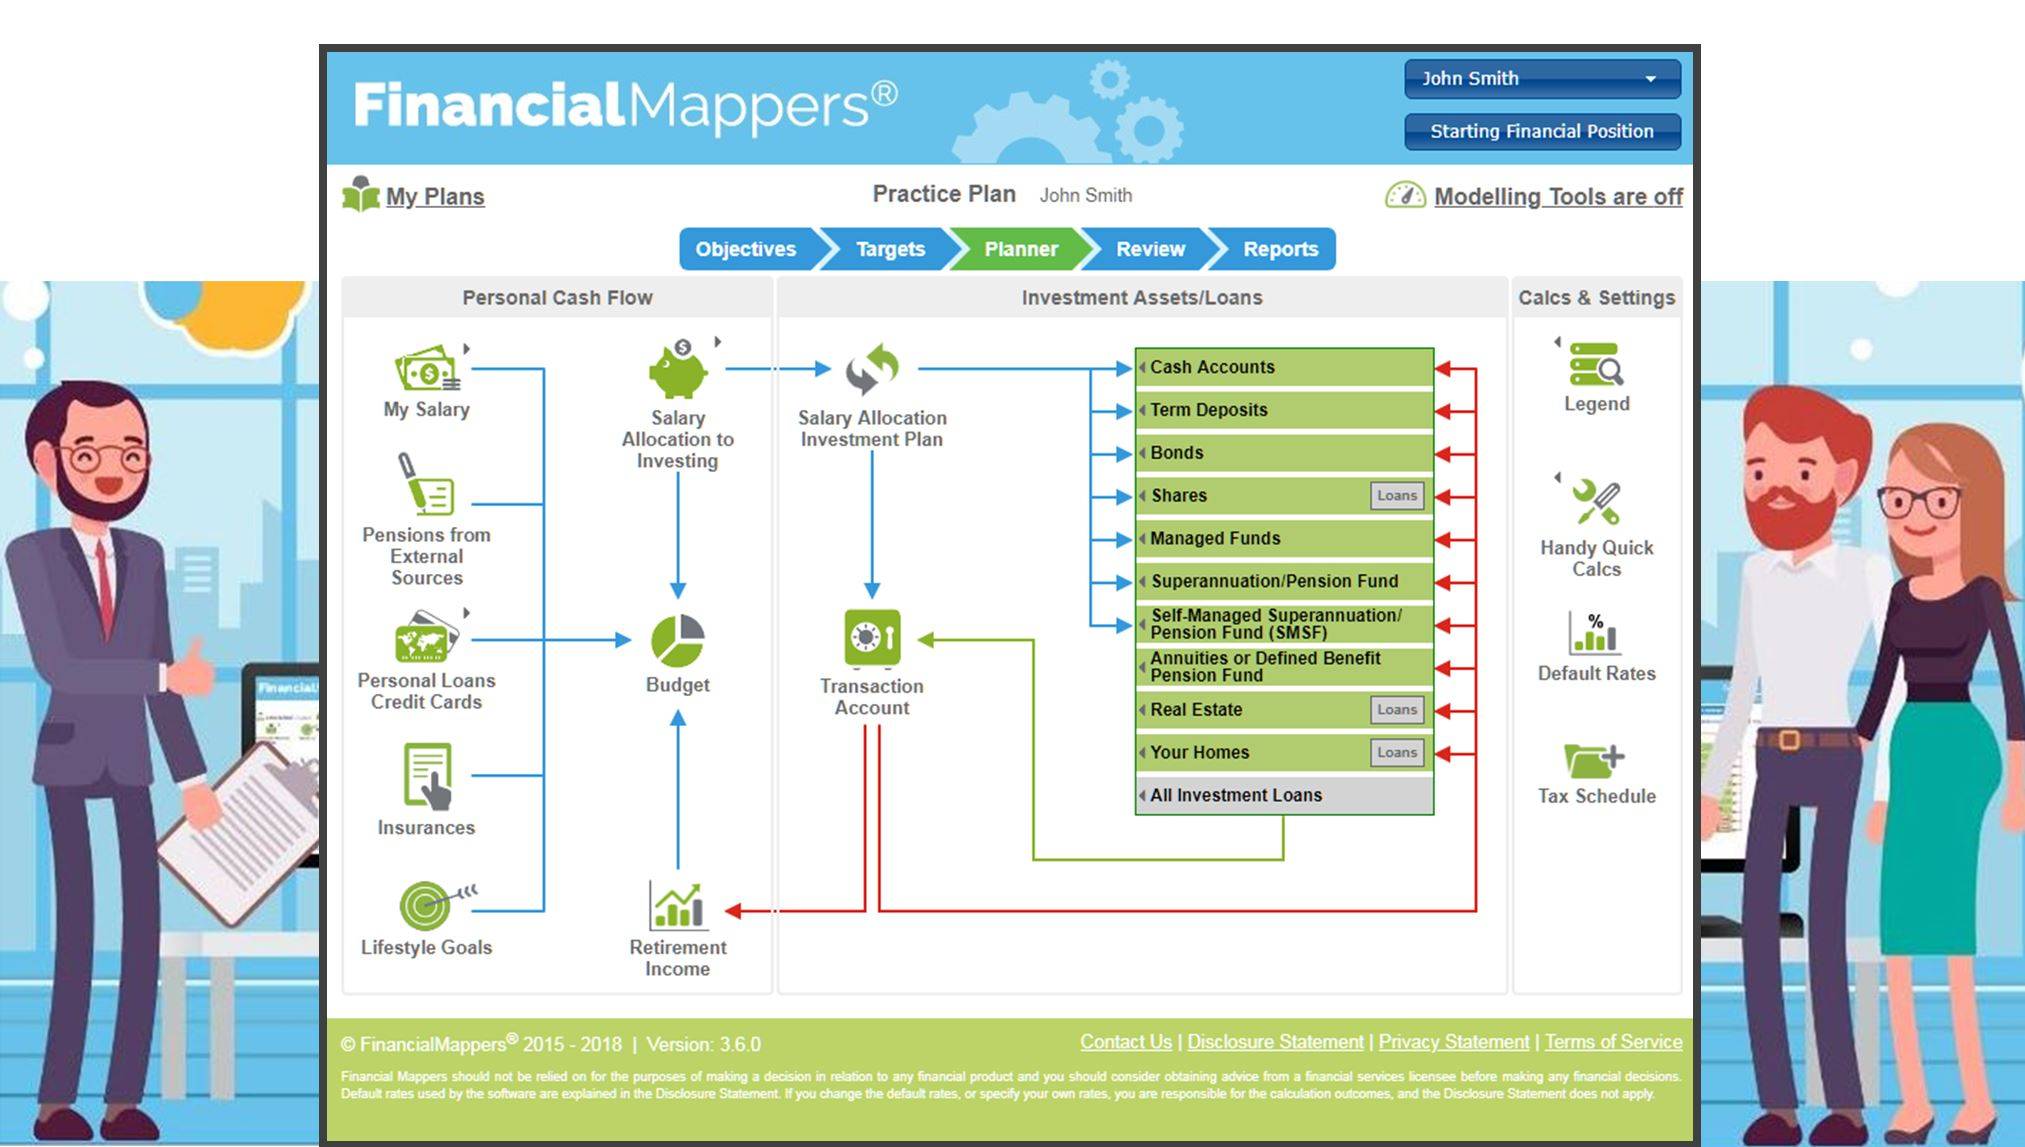 Financial Mappers Pro for Advisers, Mortgage Brokers and Accountants